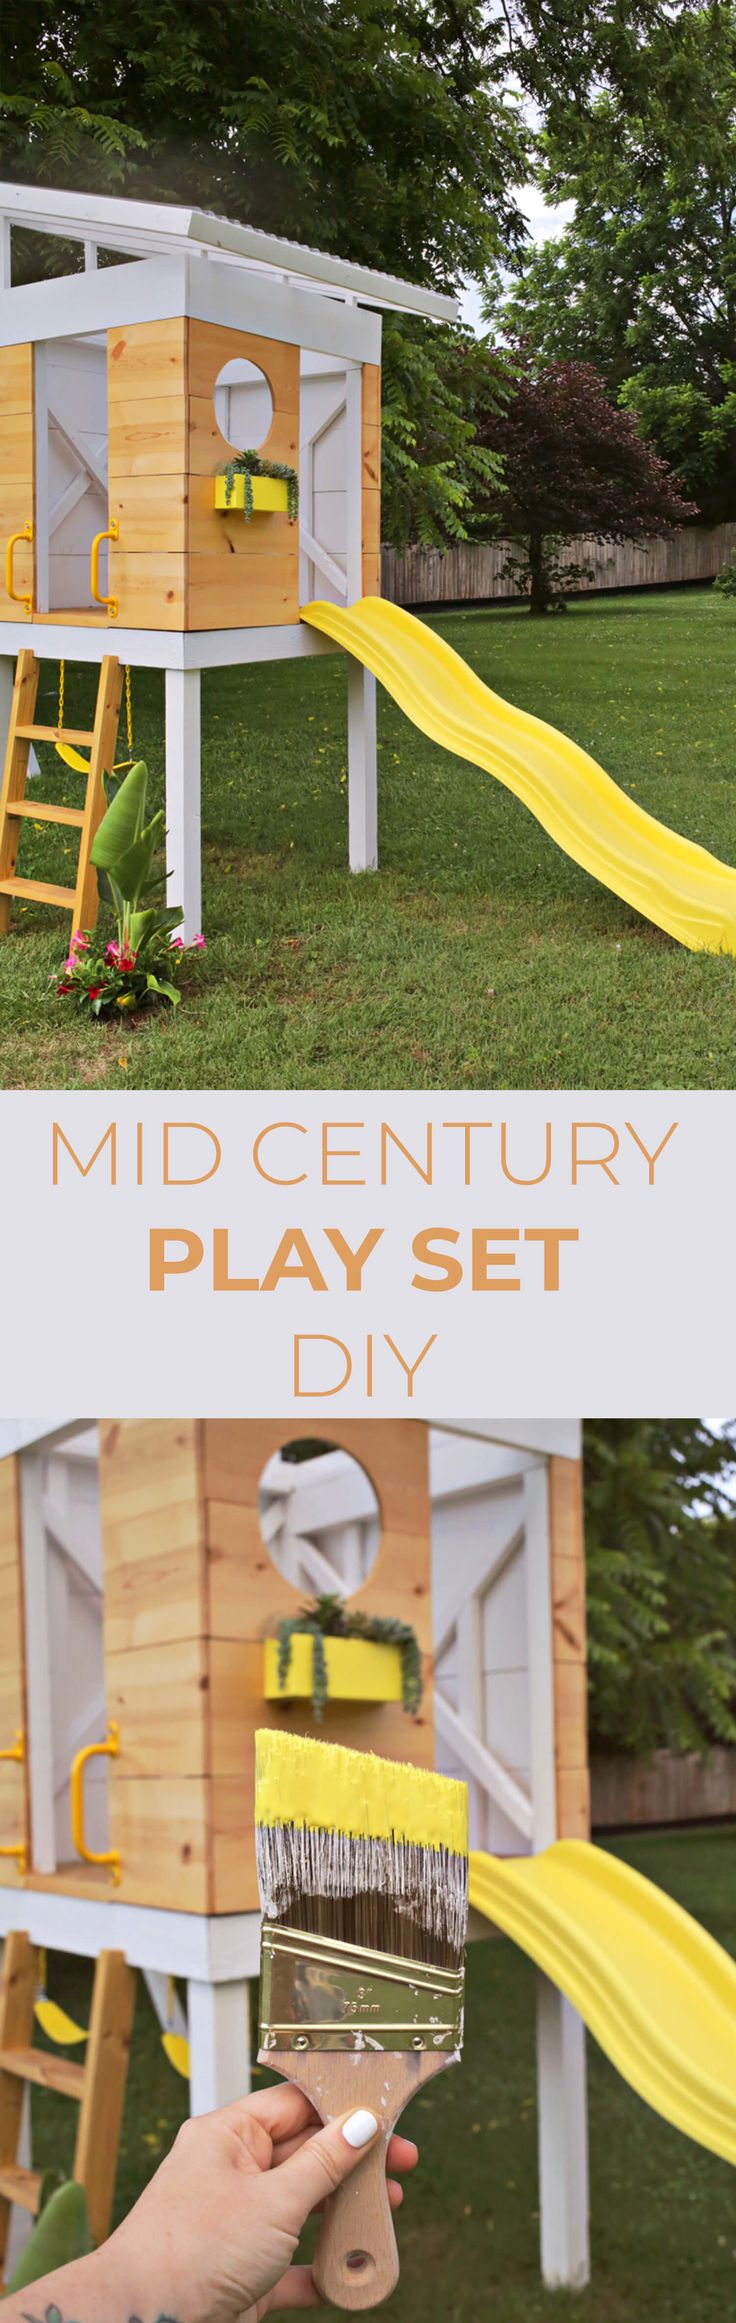 The kids will LOVE this DIY Mid Century play set.